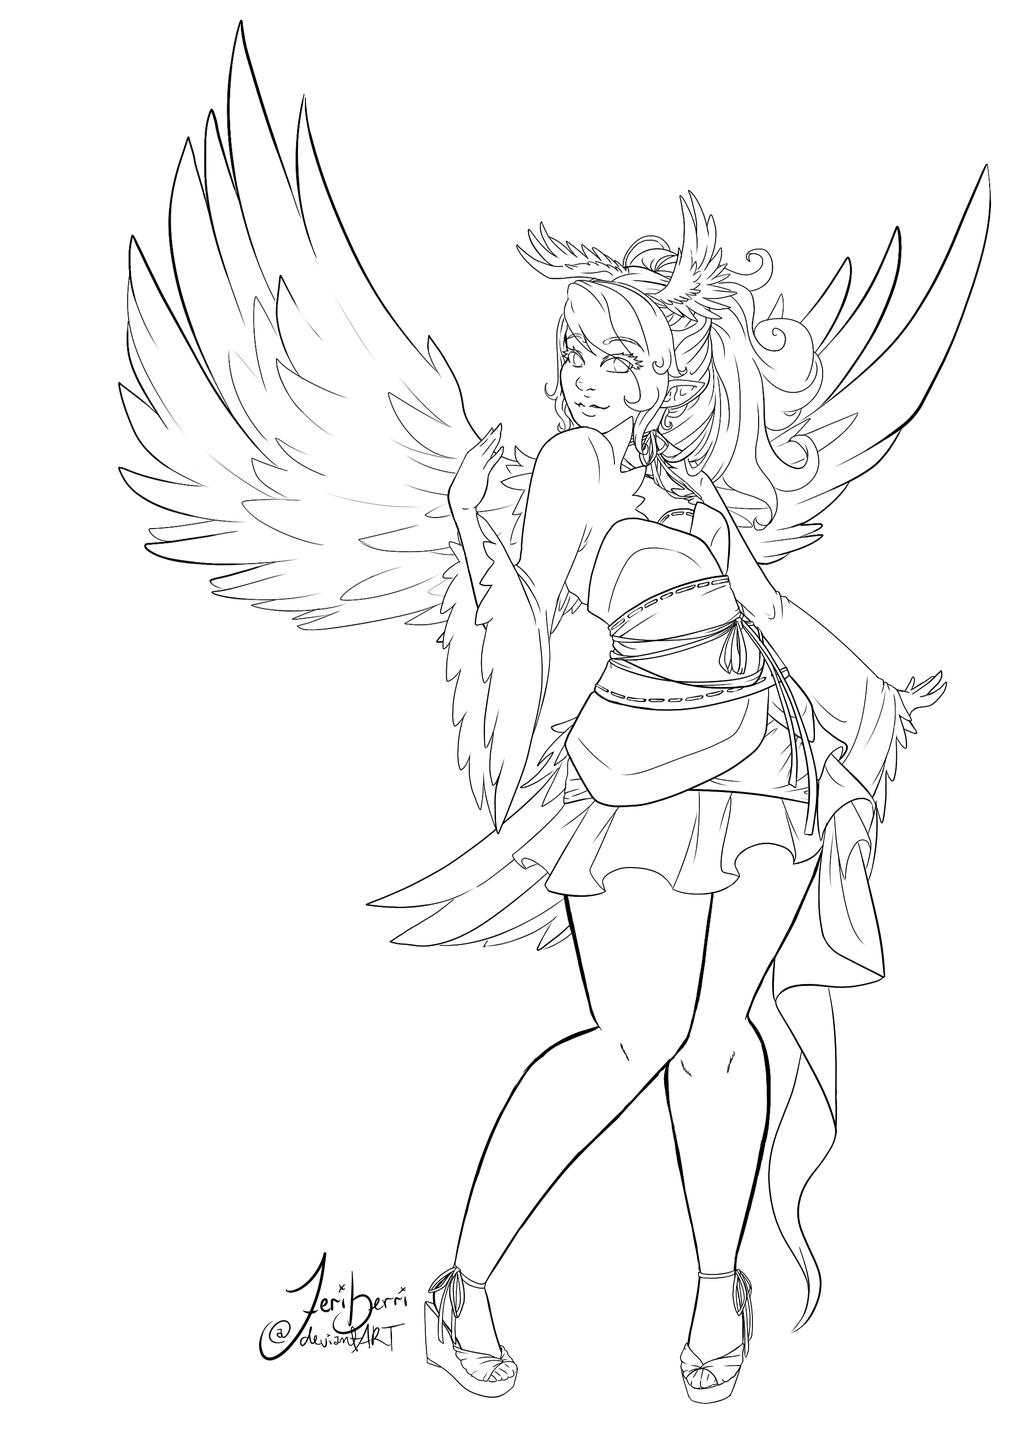 Line Drawing Dove : The dove shima lineart by feriberri on deviantart